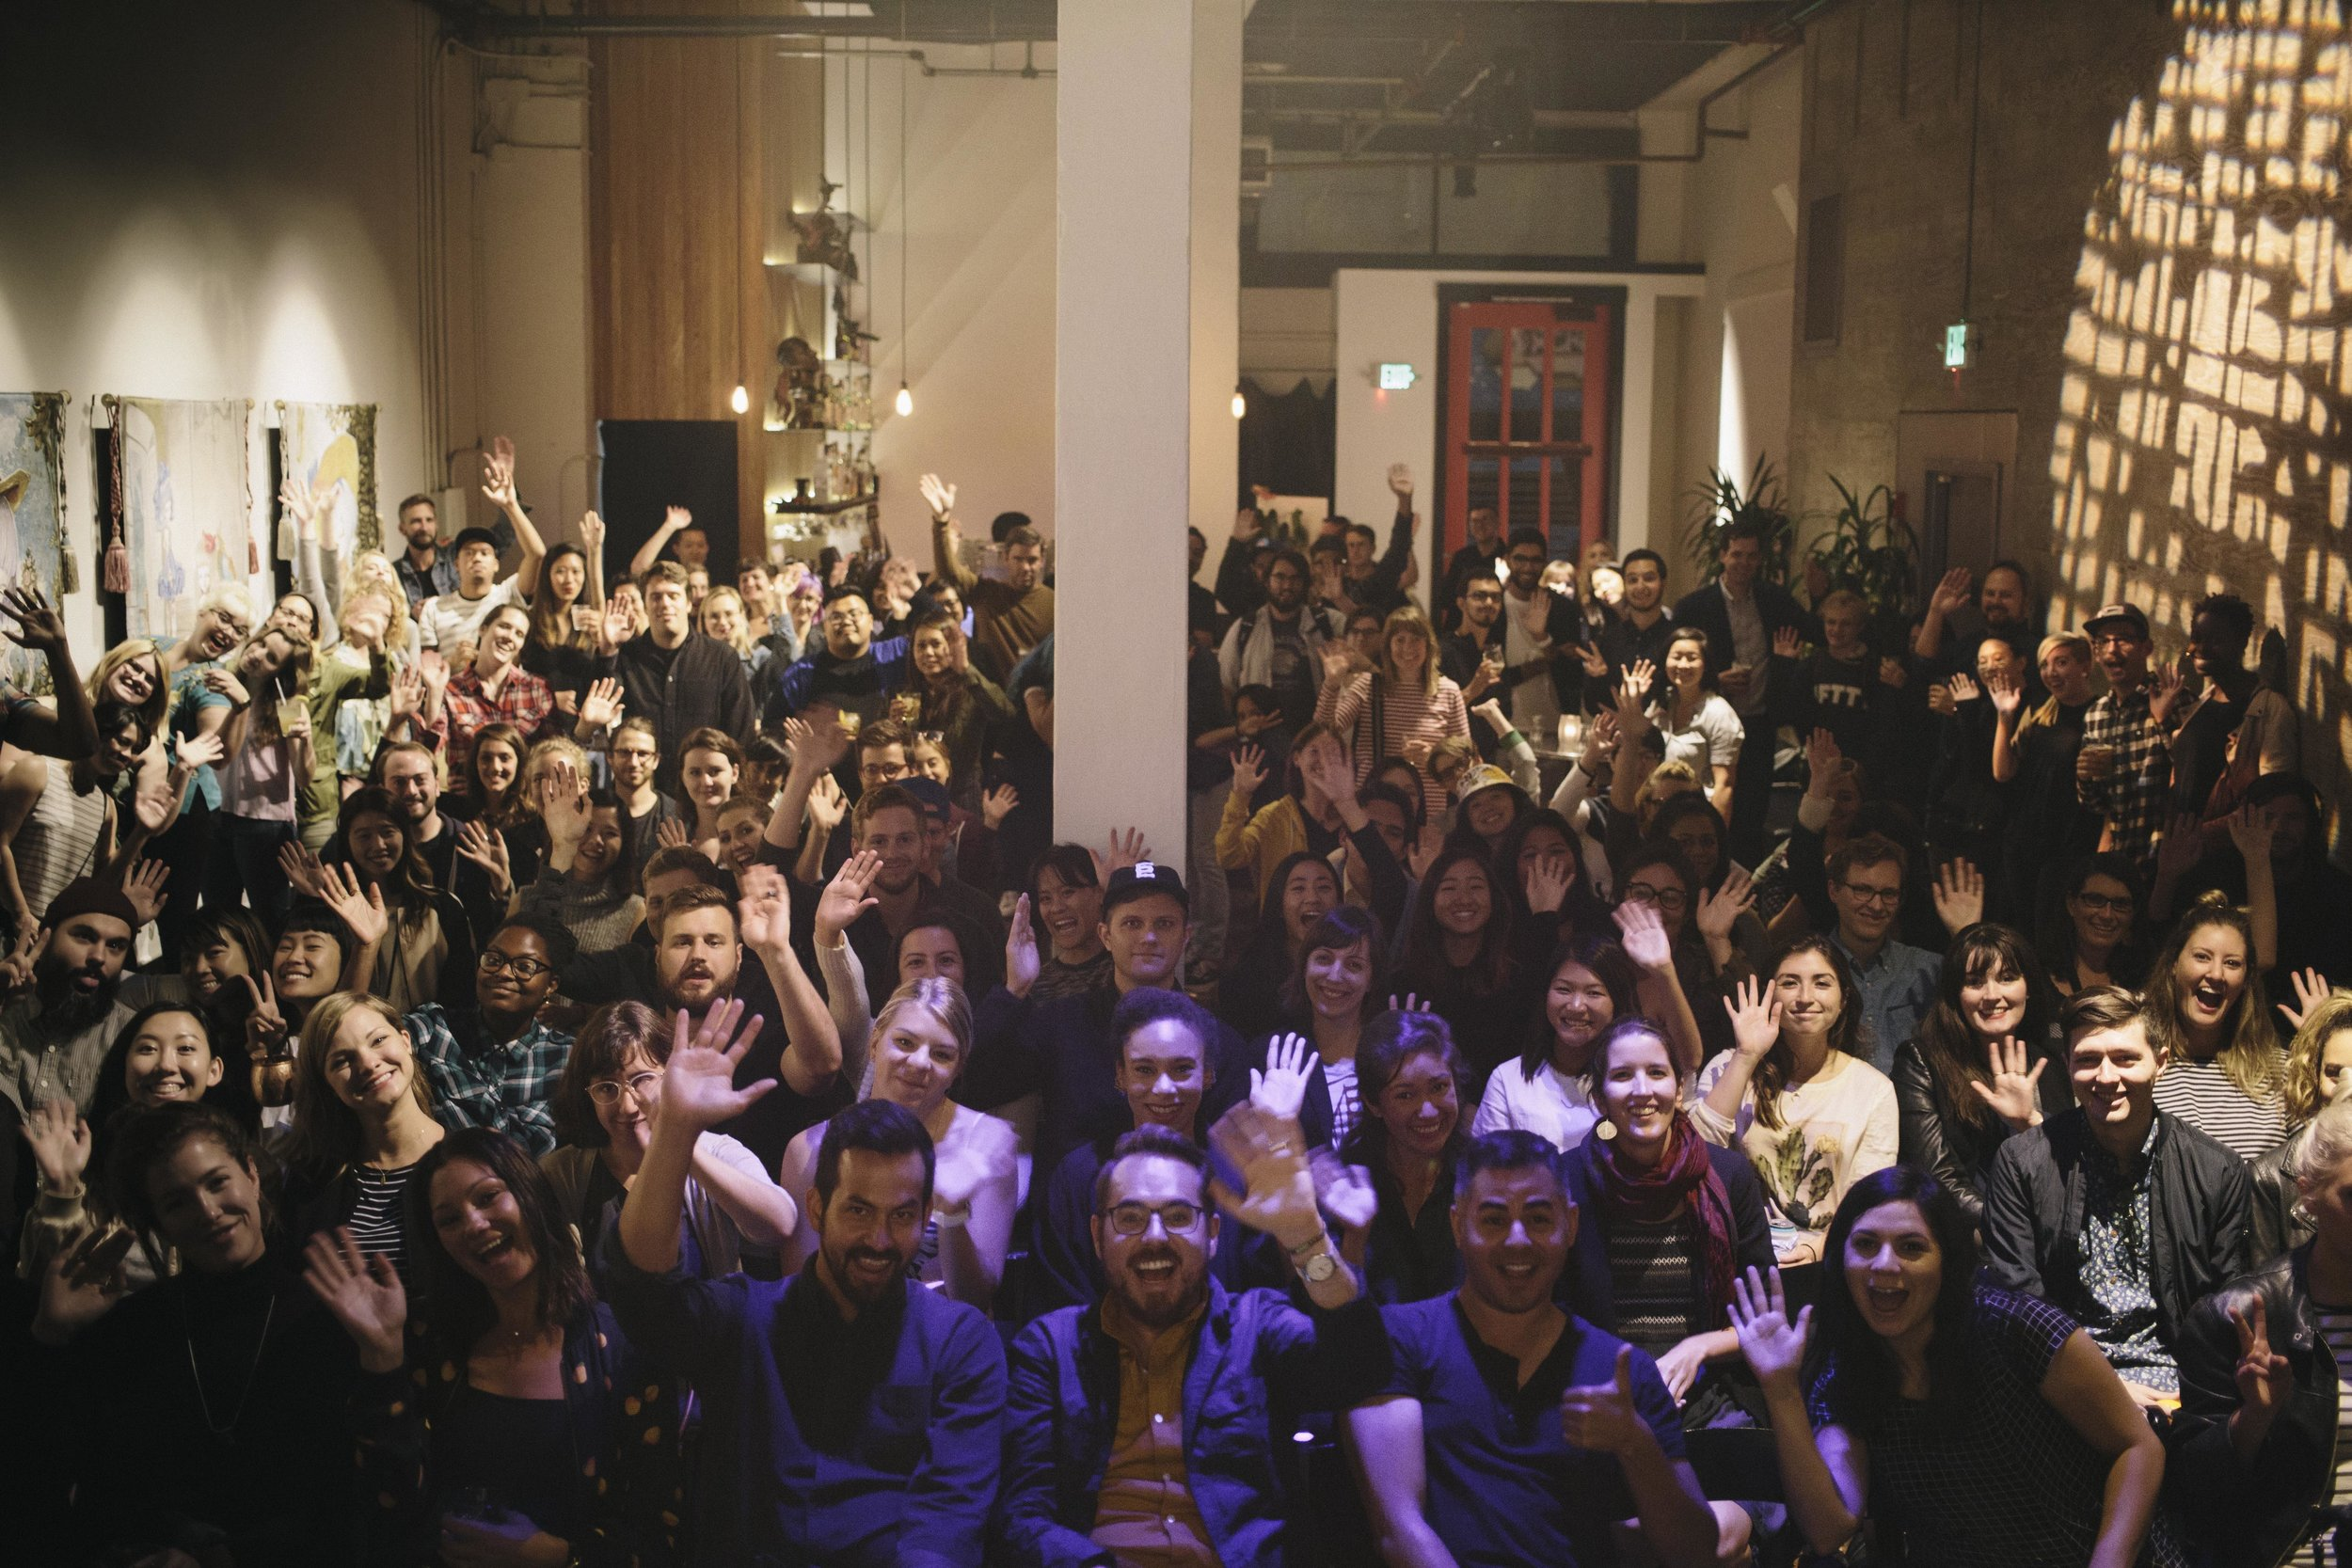 Overshare audience in San Francisco